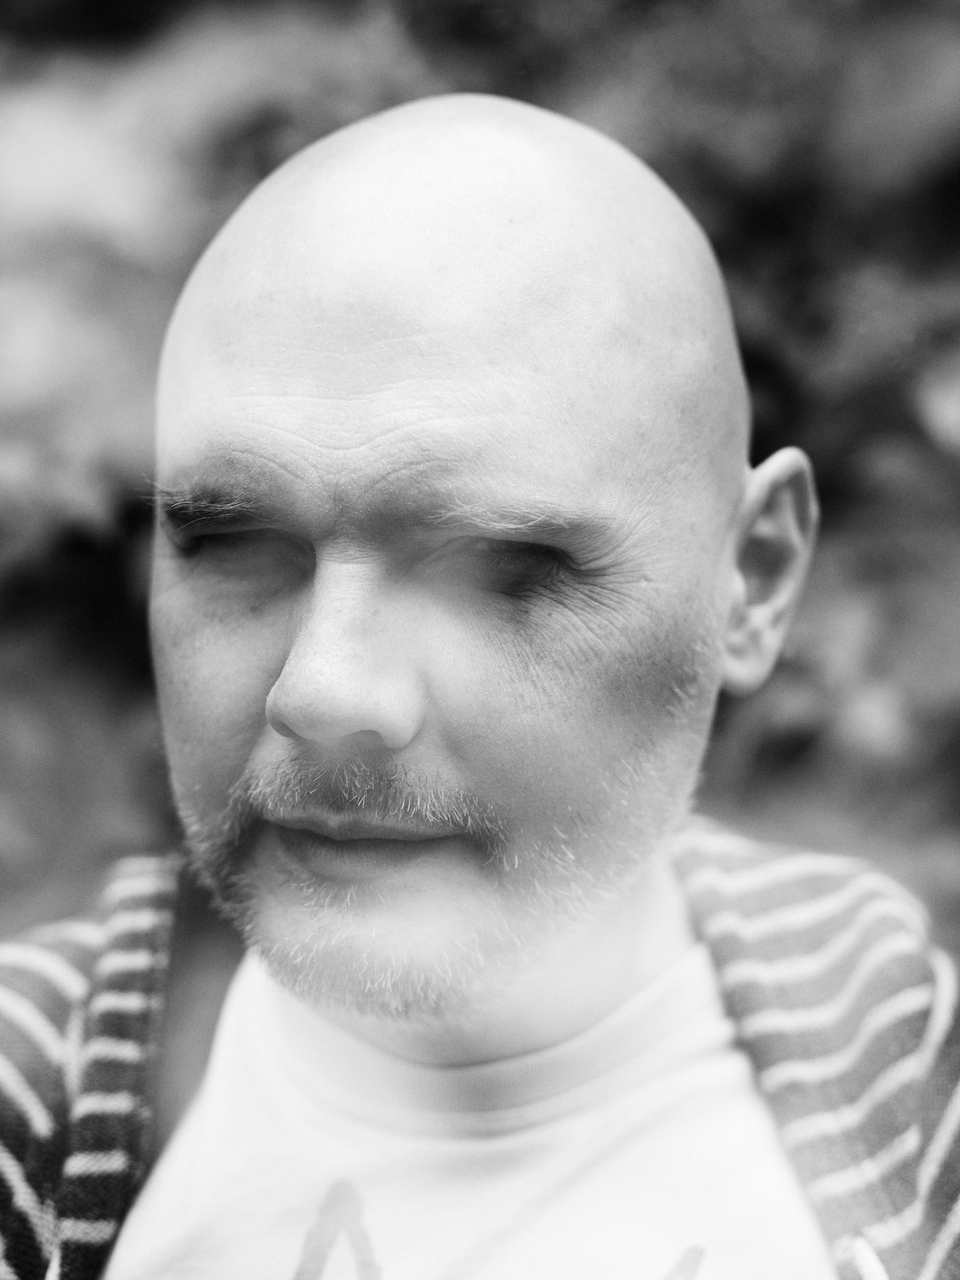 billy corgan 1993